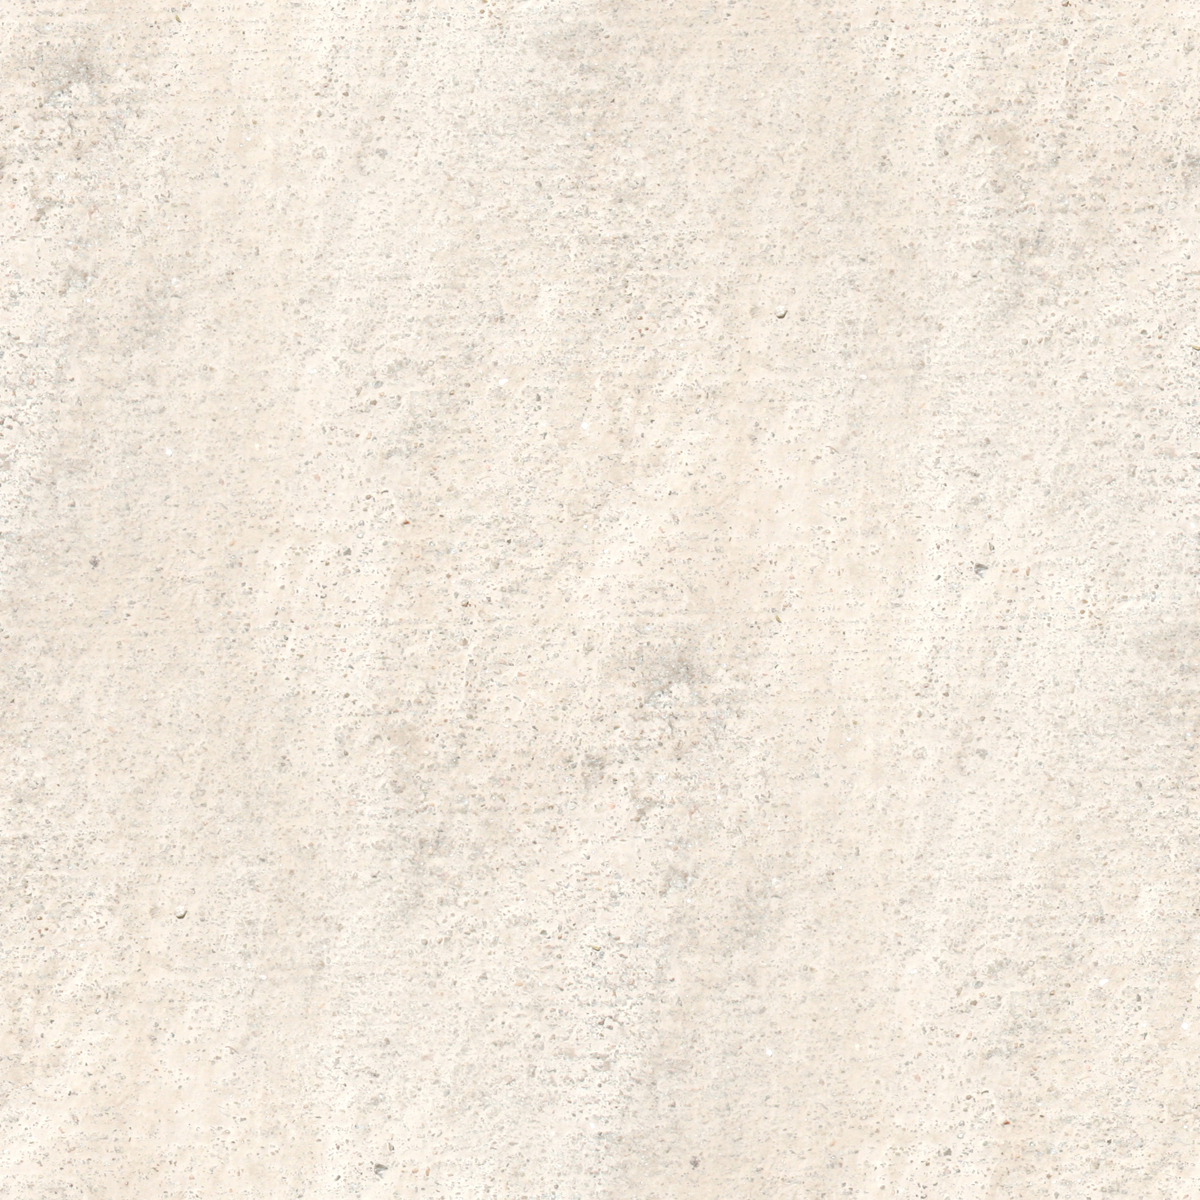 Free Seamless Background Textures Texture - L+T